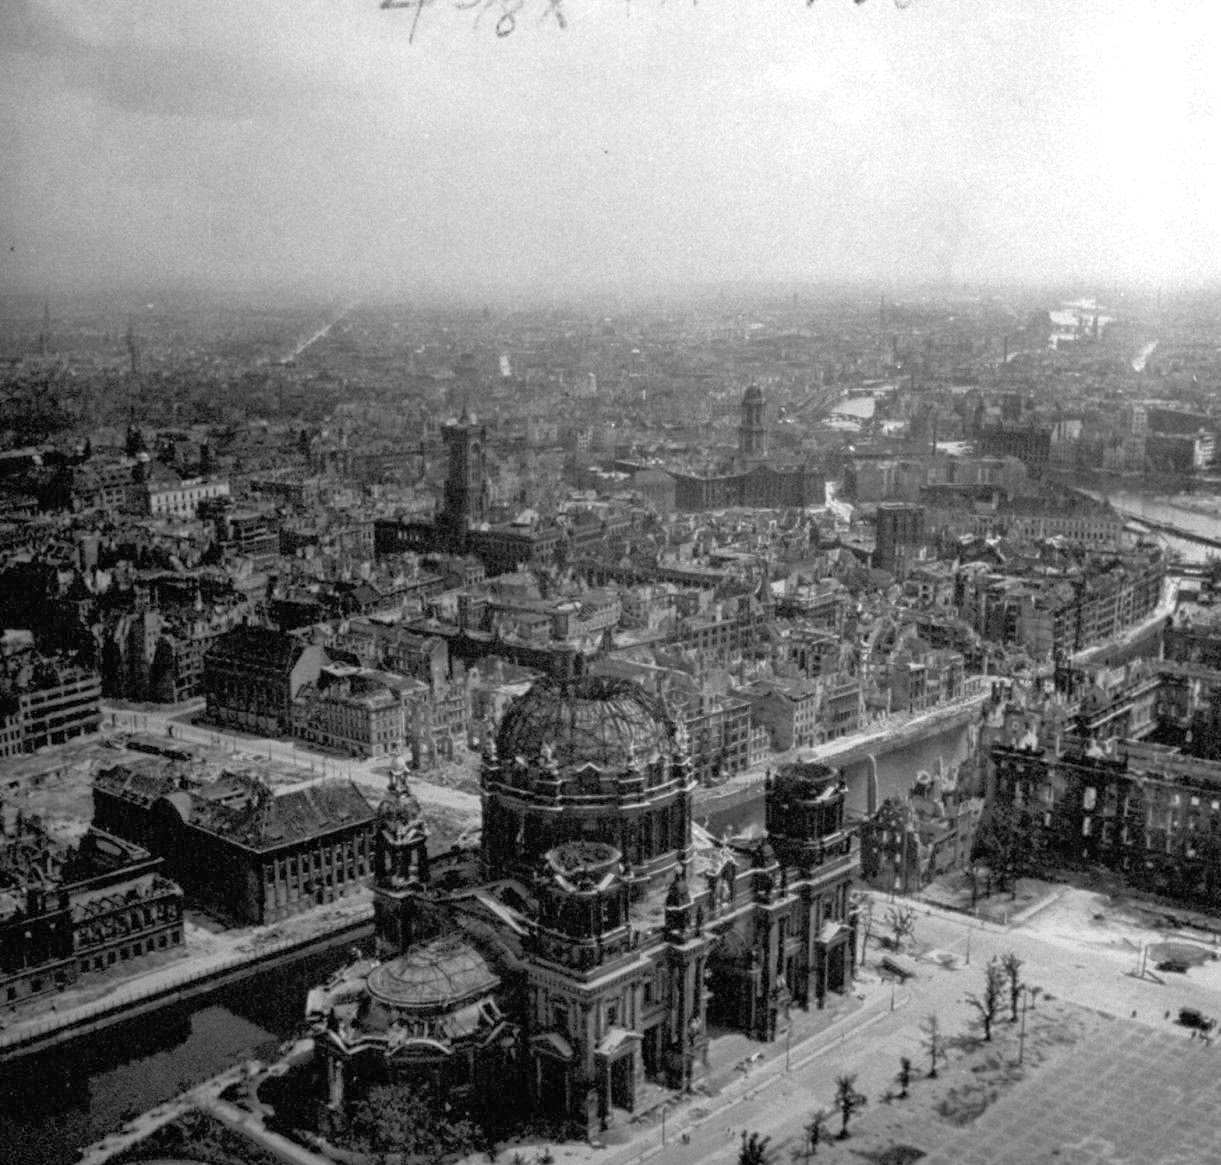 Statisticians calculated that for every inhabitant of Berlin there were nearly 30 cubic meters of rubble.